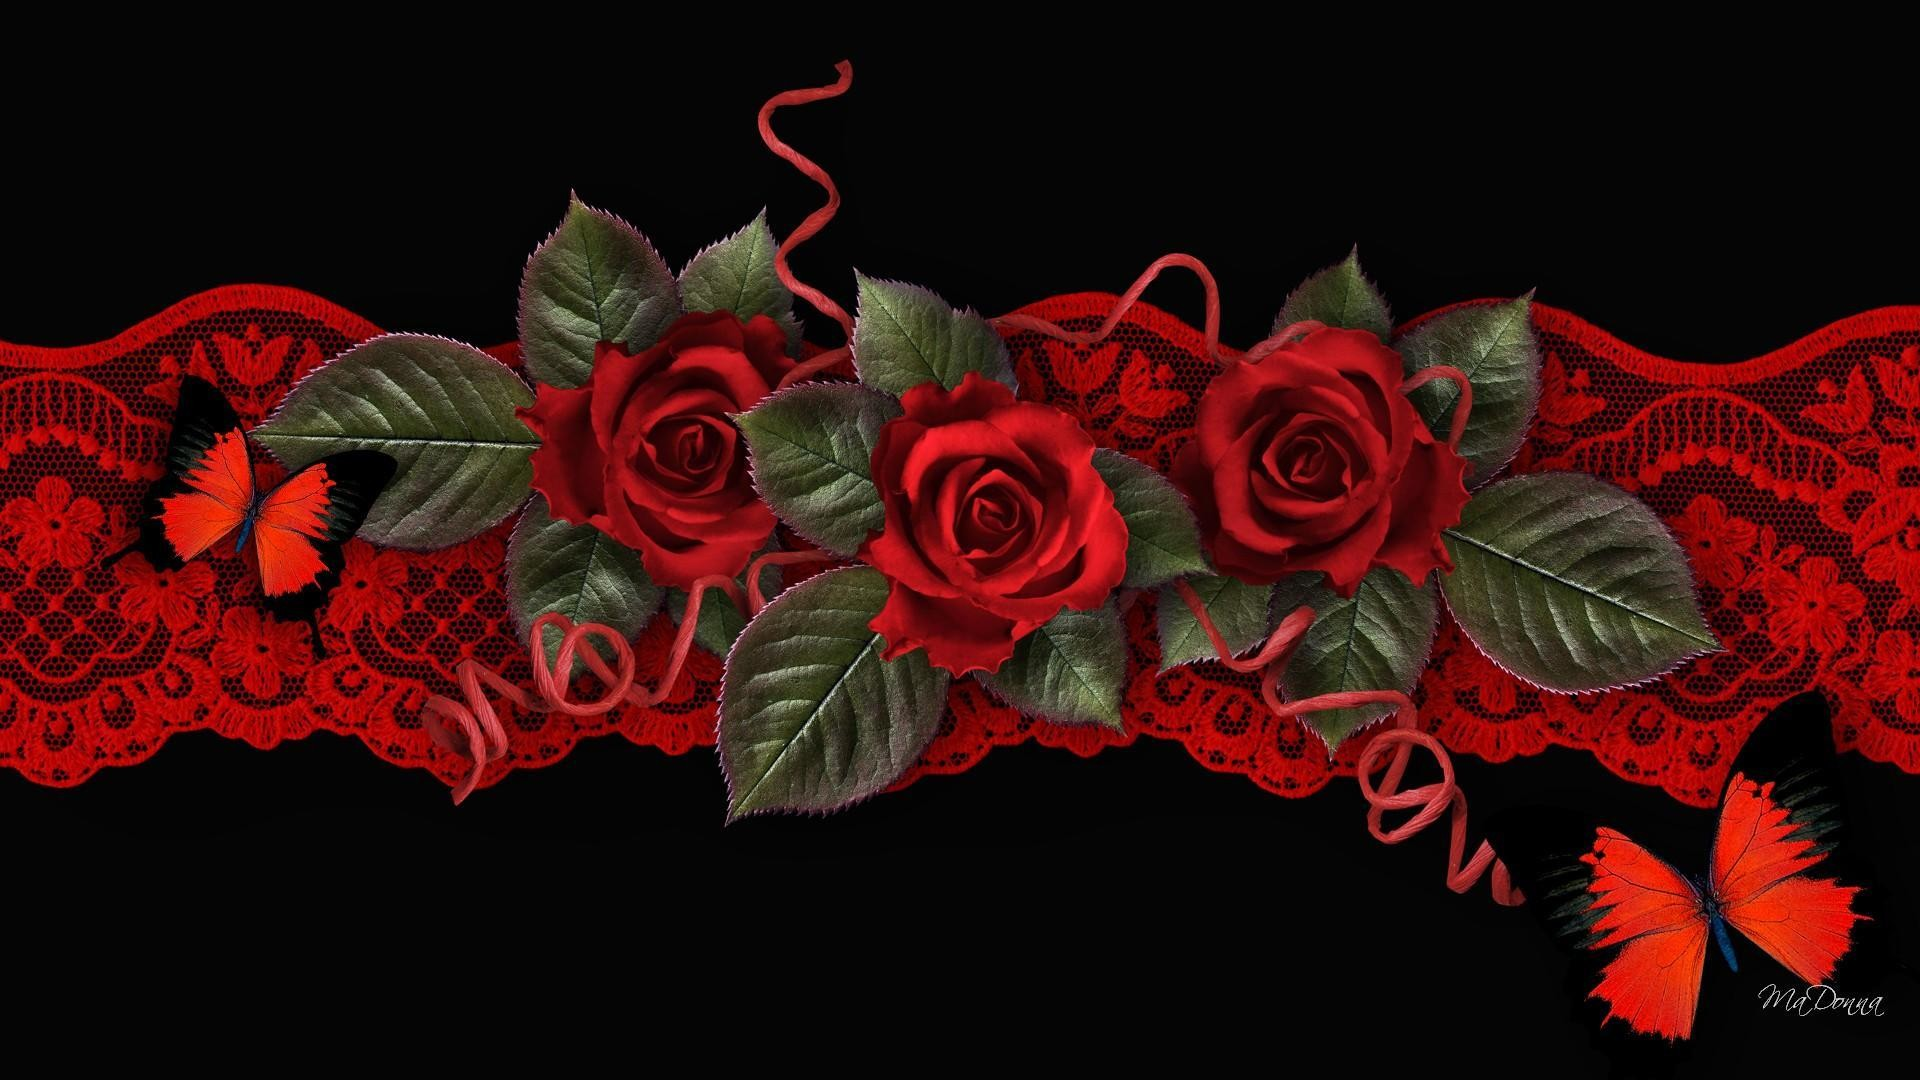 Res: 1920x1080, Artistic - Rose Red Flower Artistic Red Butterfly Wallpaper